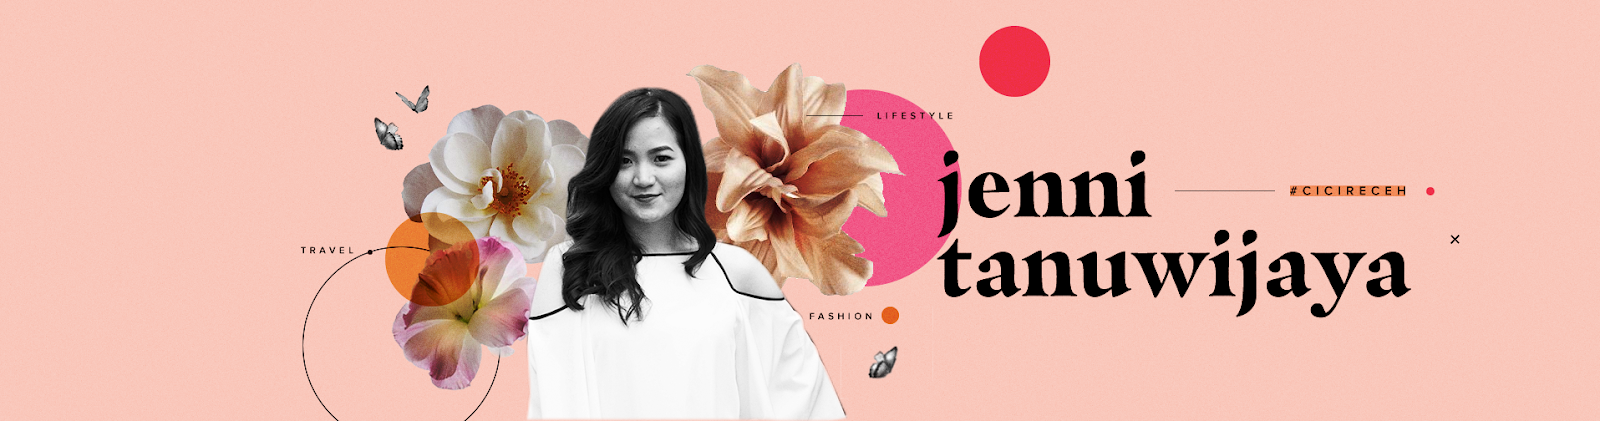 Jennitanuwijaya Beauty| Fashion | Lifestyle Blog